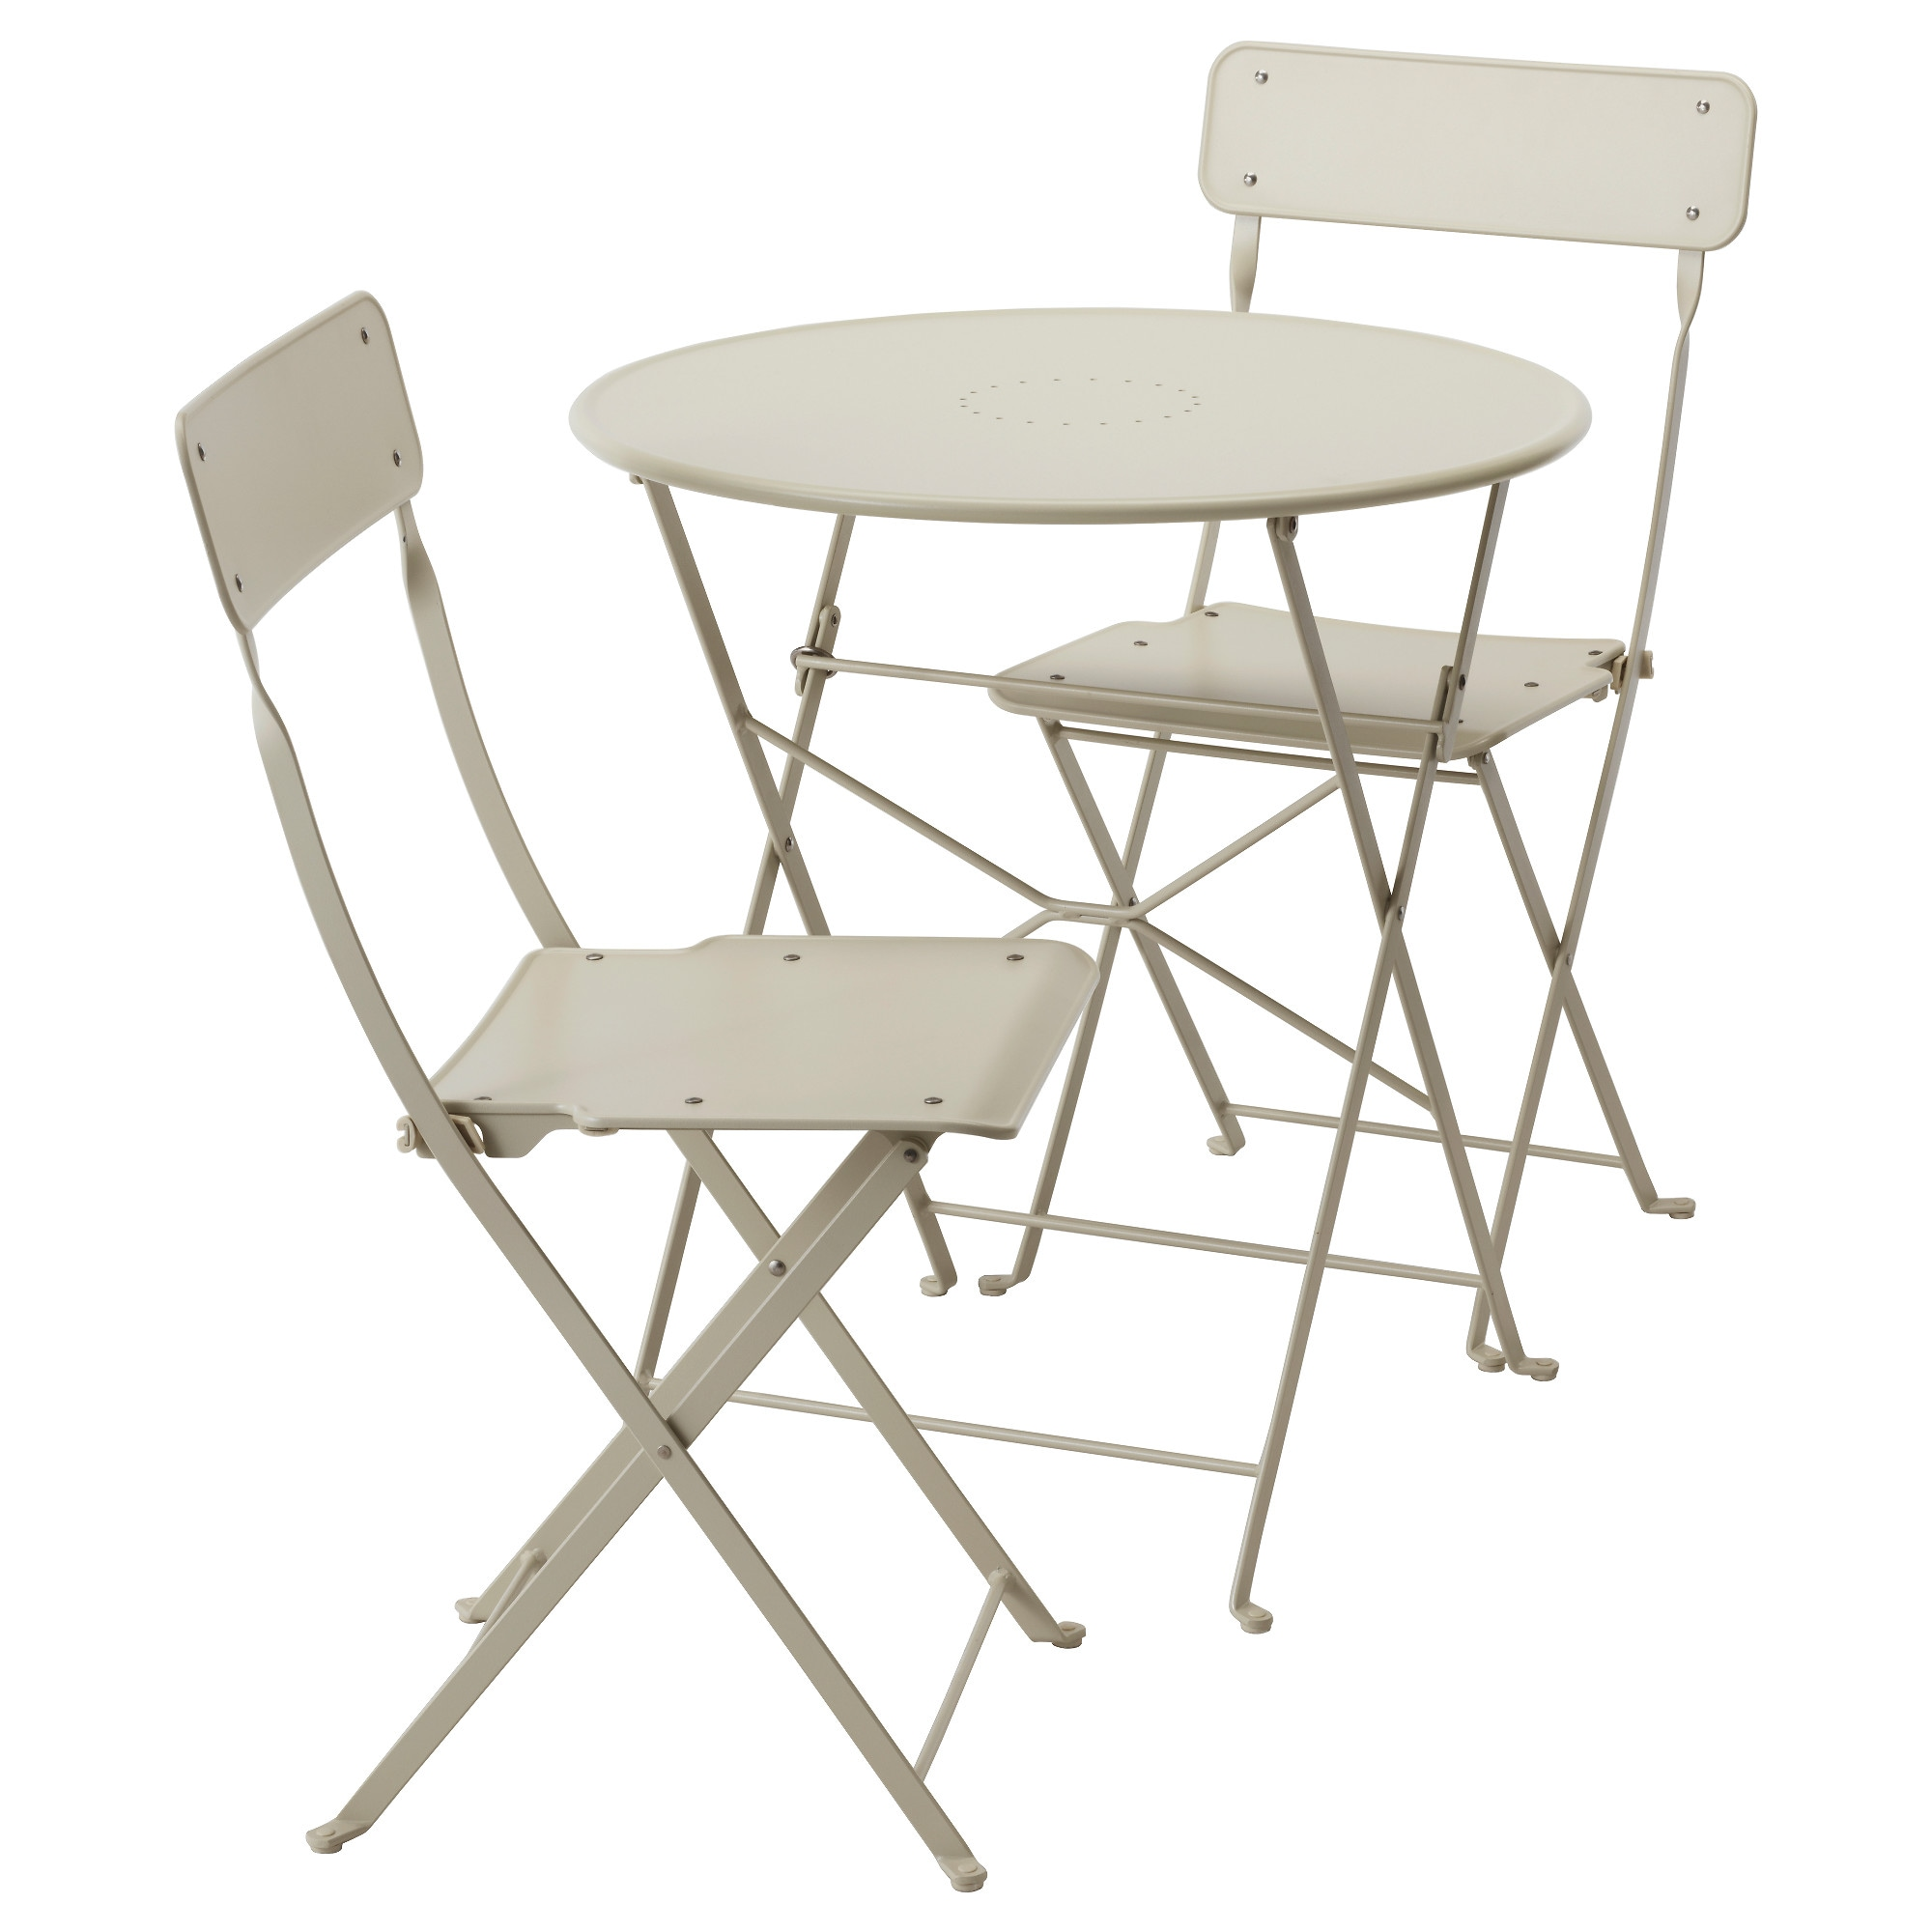 Outdoor table and chairs - Saltholmen Table And 2 Folding Chairs Outdoor Beige